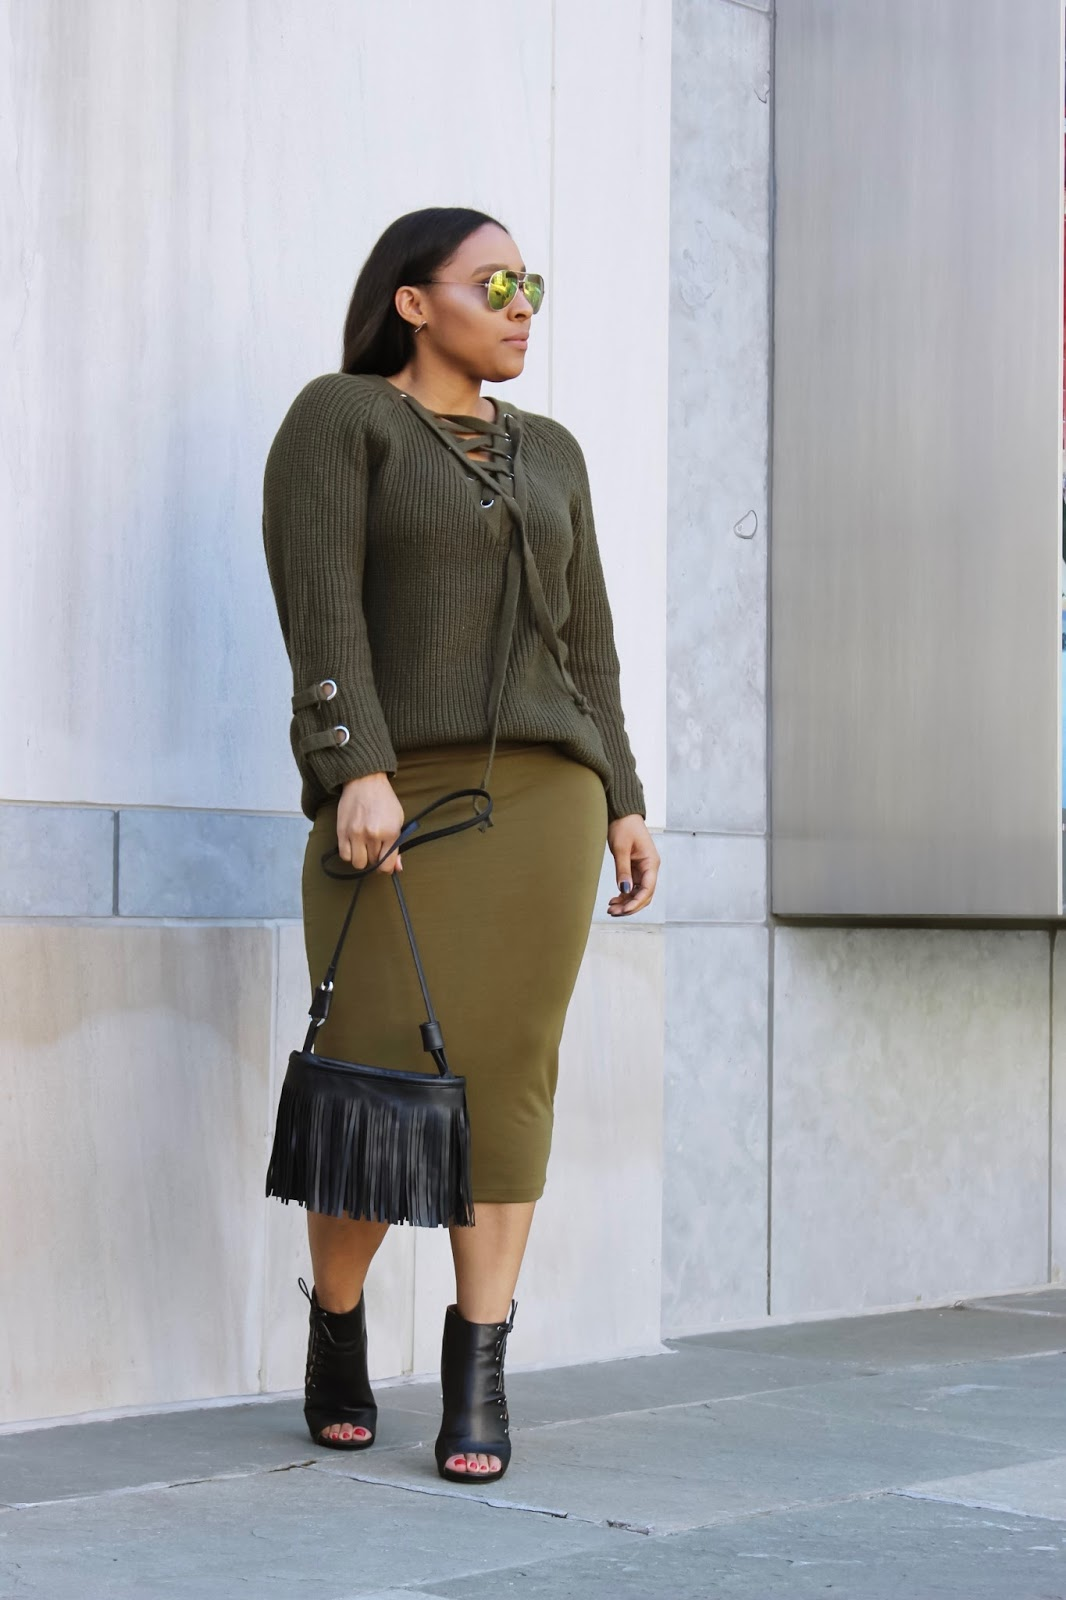 A Lace-Up Sweater Outfit Idea by Patty's Kloset, fringe purse, mirrored sunglasses, olive skirt, midi skirt, dominican blogger, spring outfits, how to monochrome, open toe booties